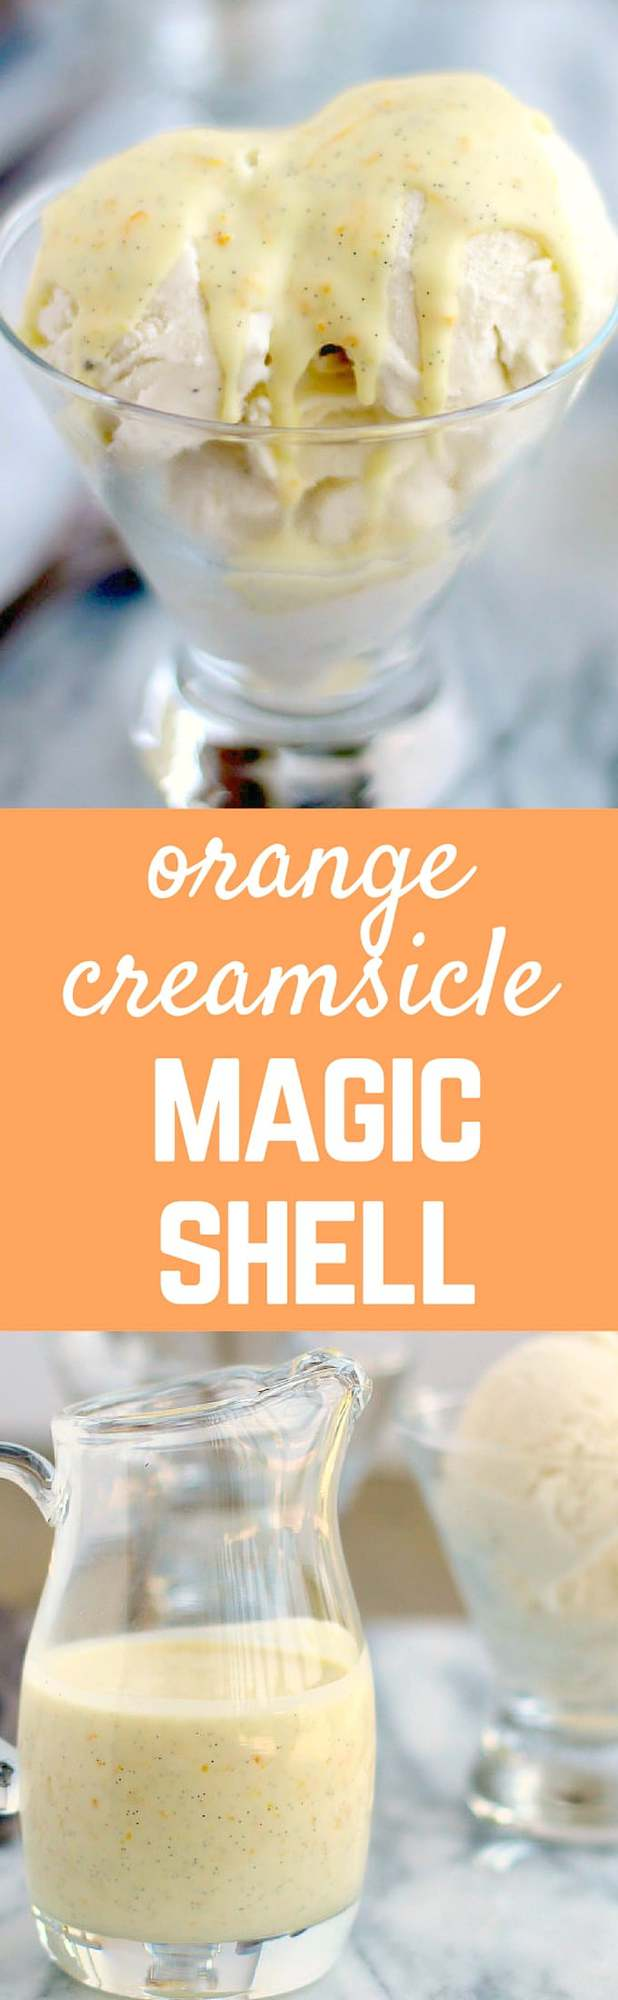 This magic shell recipe isn't your traditional fudge variety. This has the vibrant flavors of orange zest and vanilla bean. Perfect over vanilla ice cream. Get the recipe on RachelCooks.com!